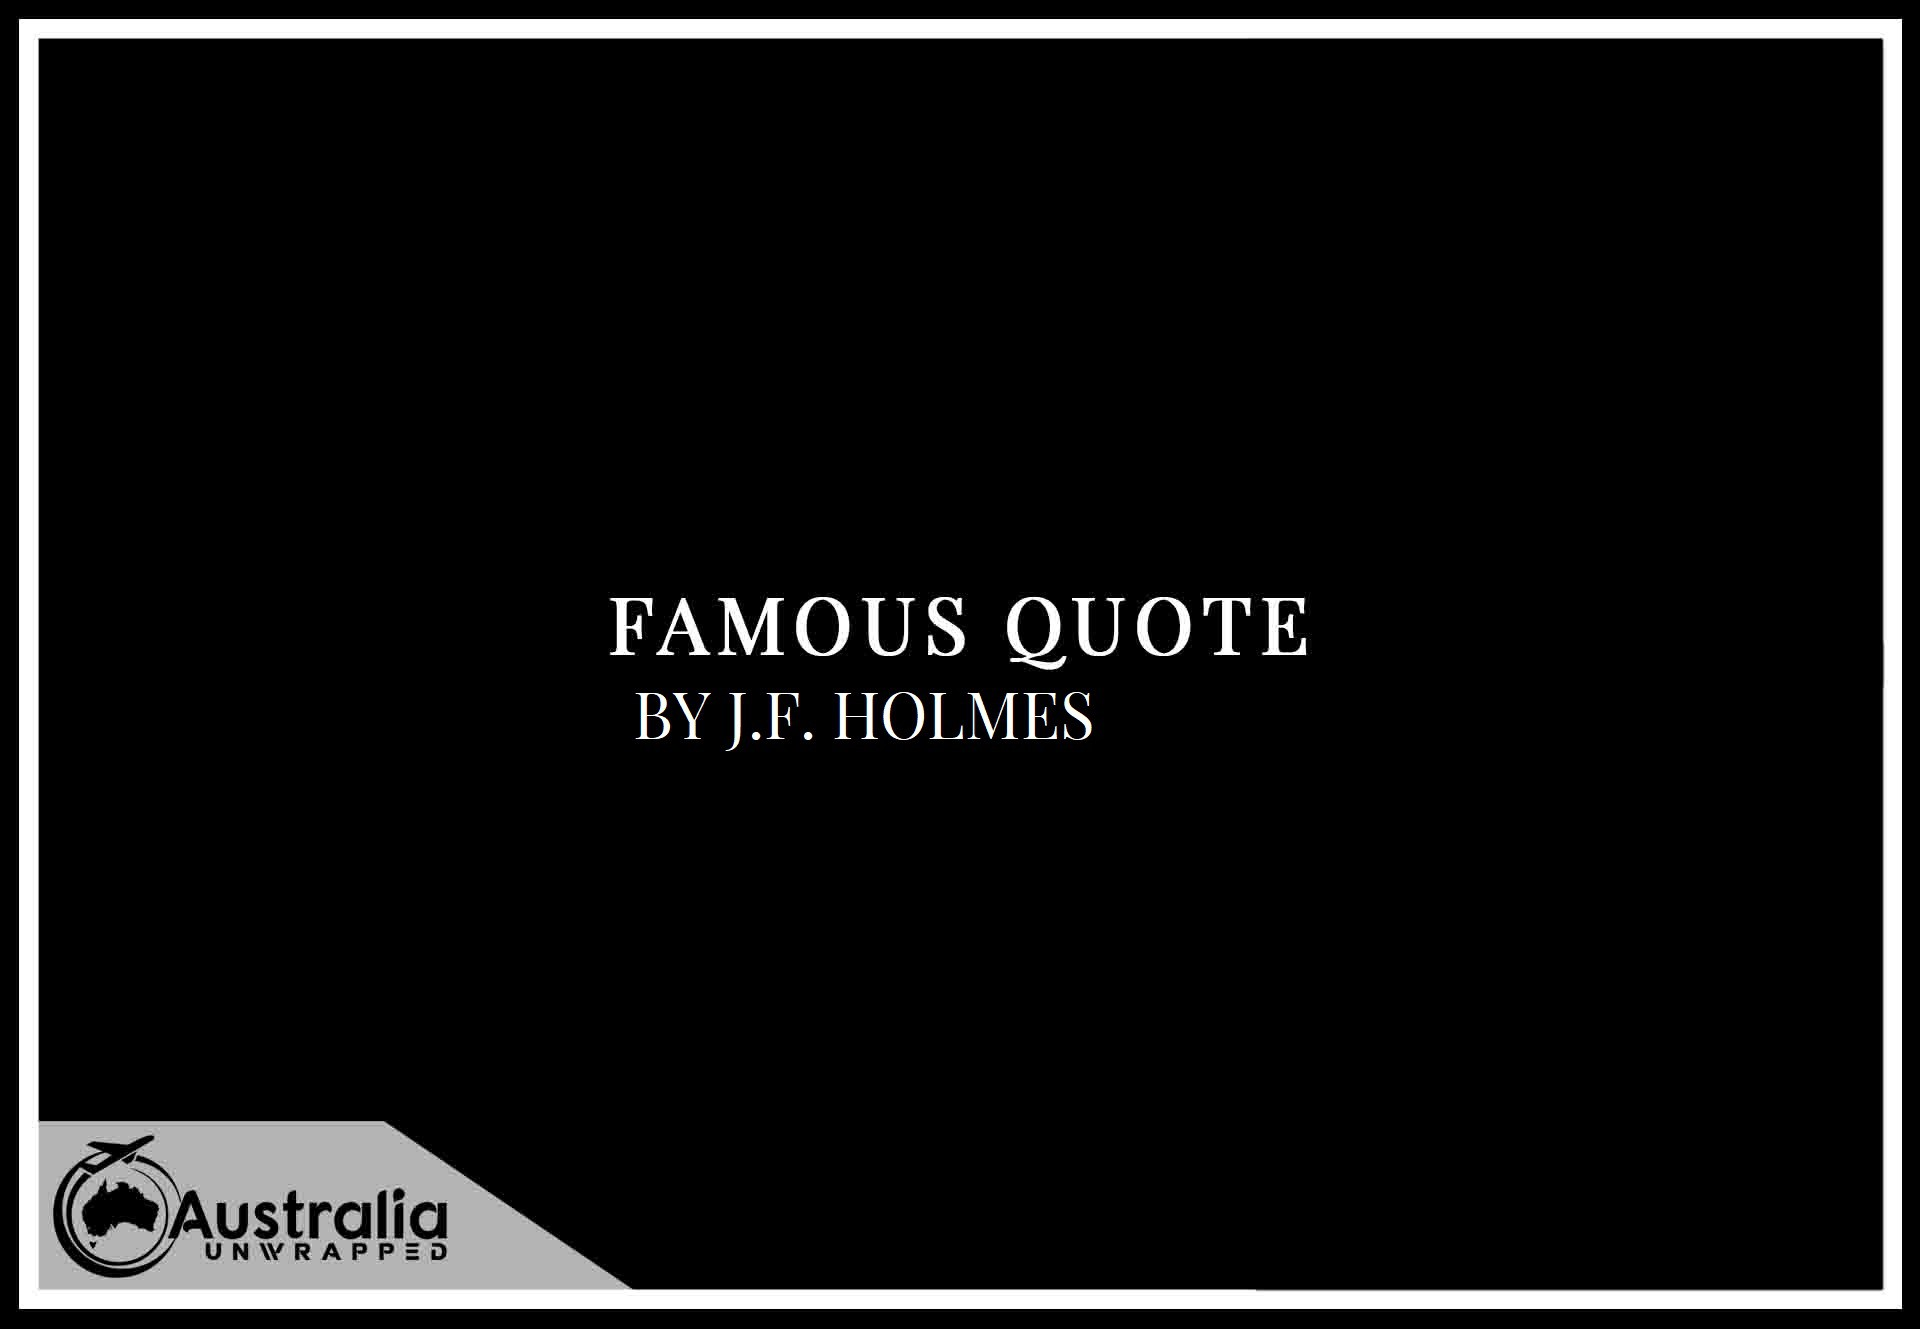 Top 1 Famous Quotes by Author J.F. Holmes